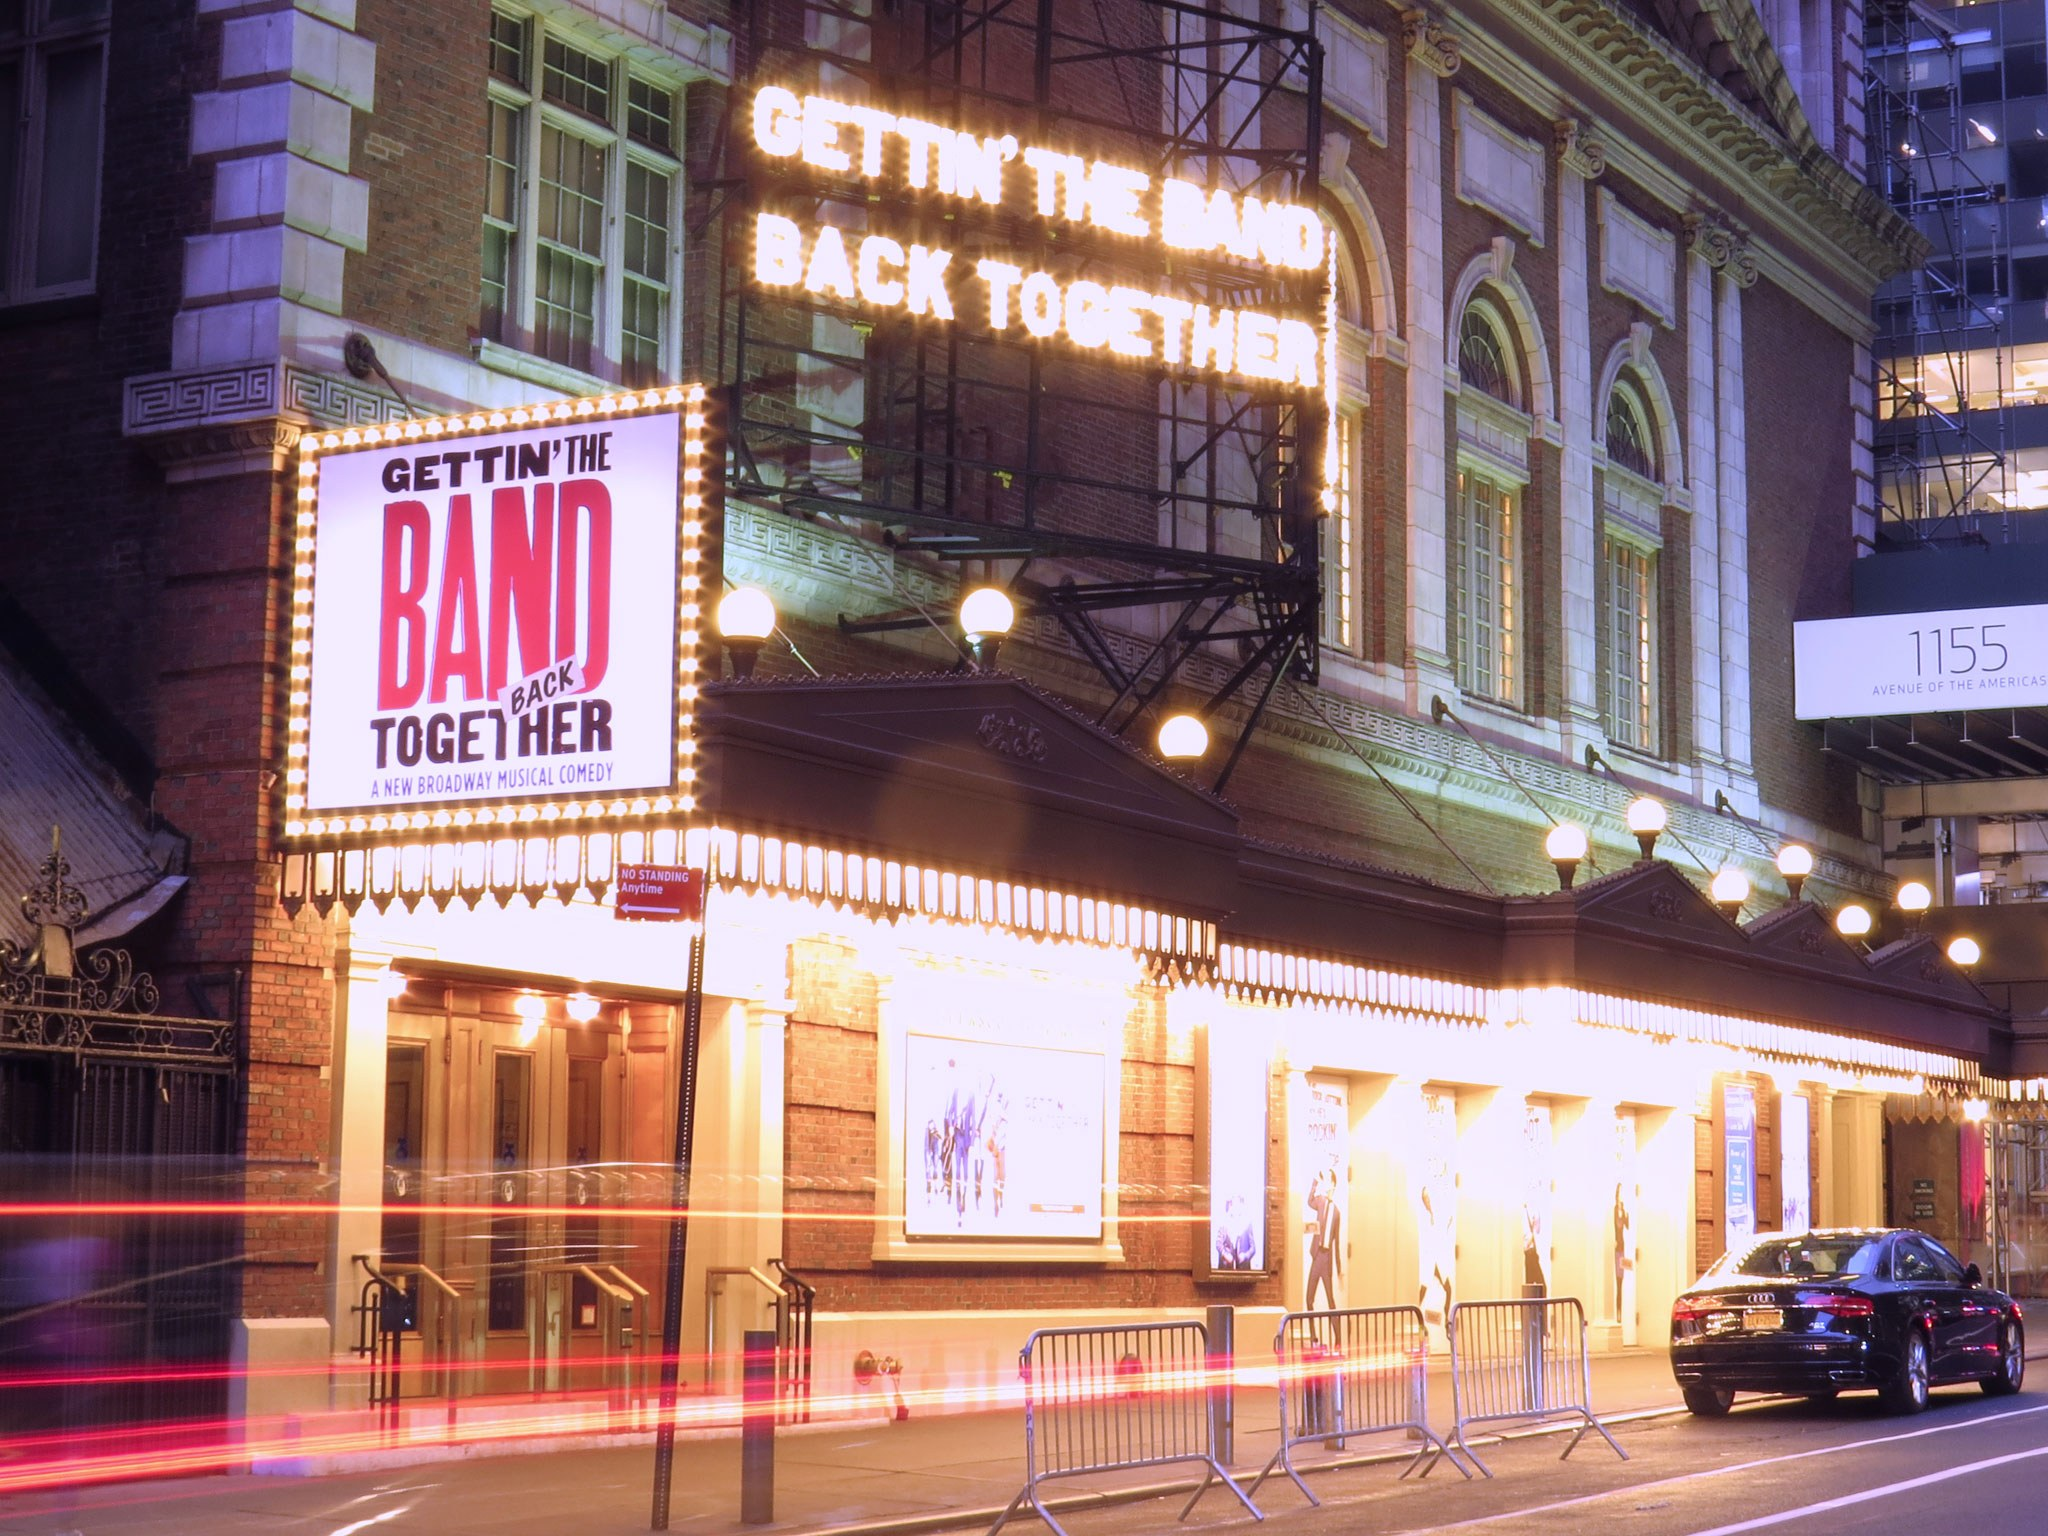 Gettin' the Band Back Together Marquee